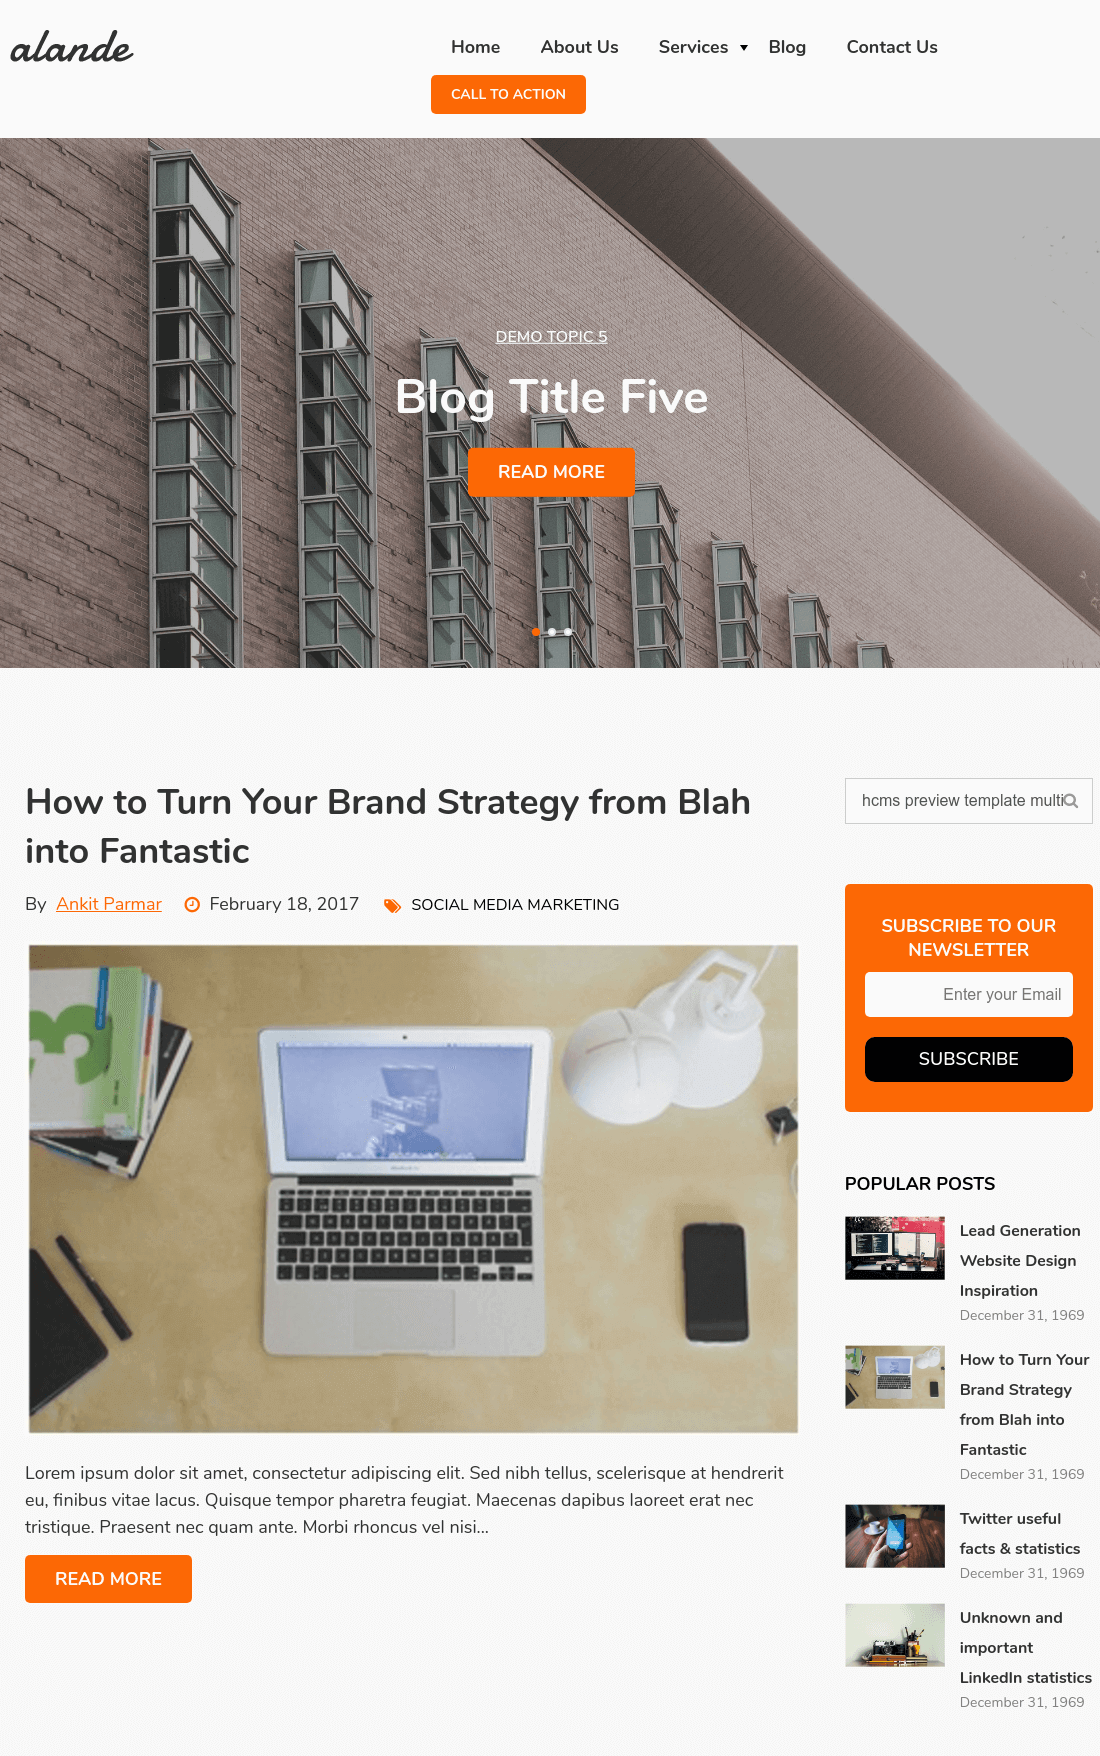 Hubspot blog templates enhancing the content experience with excellent navigation and good content design.